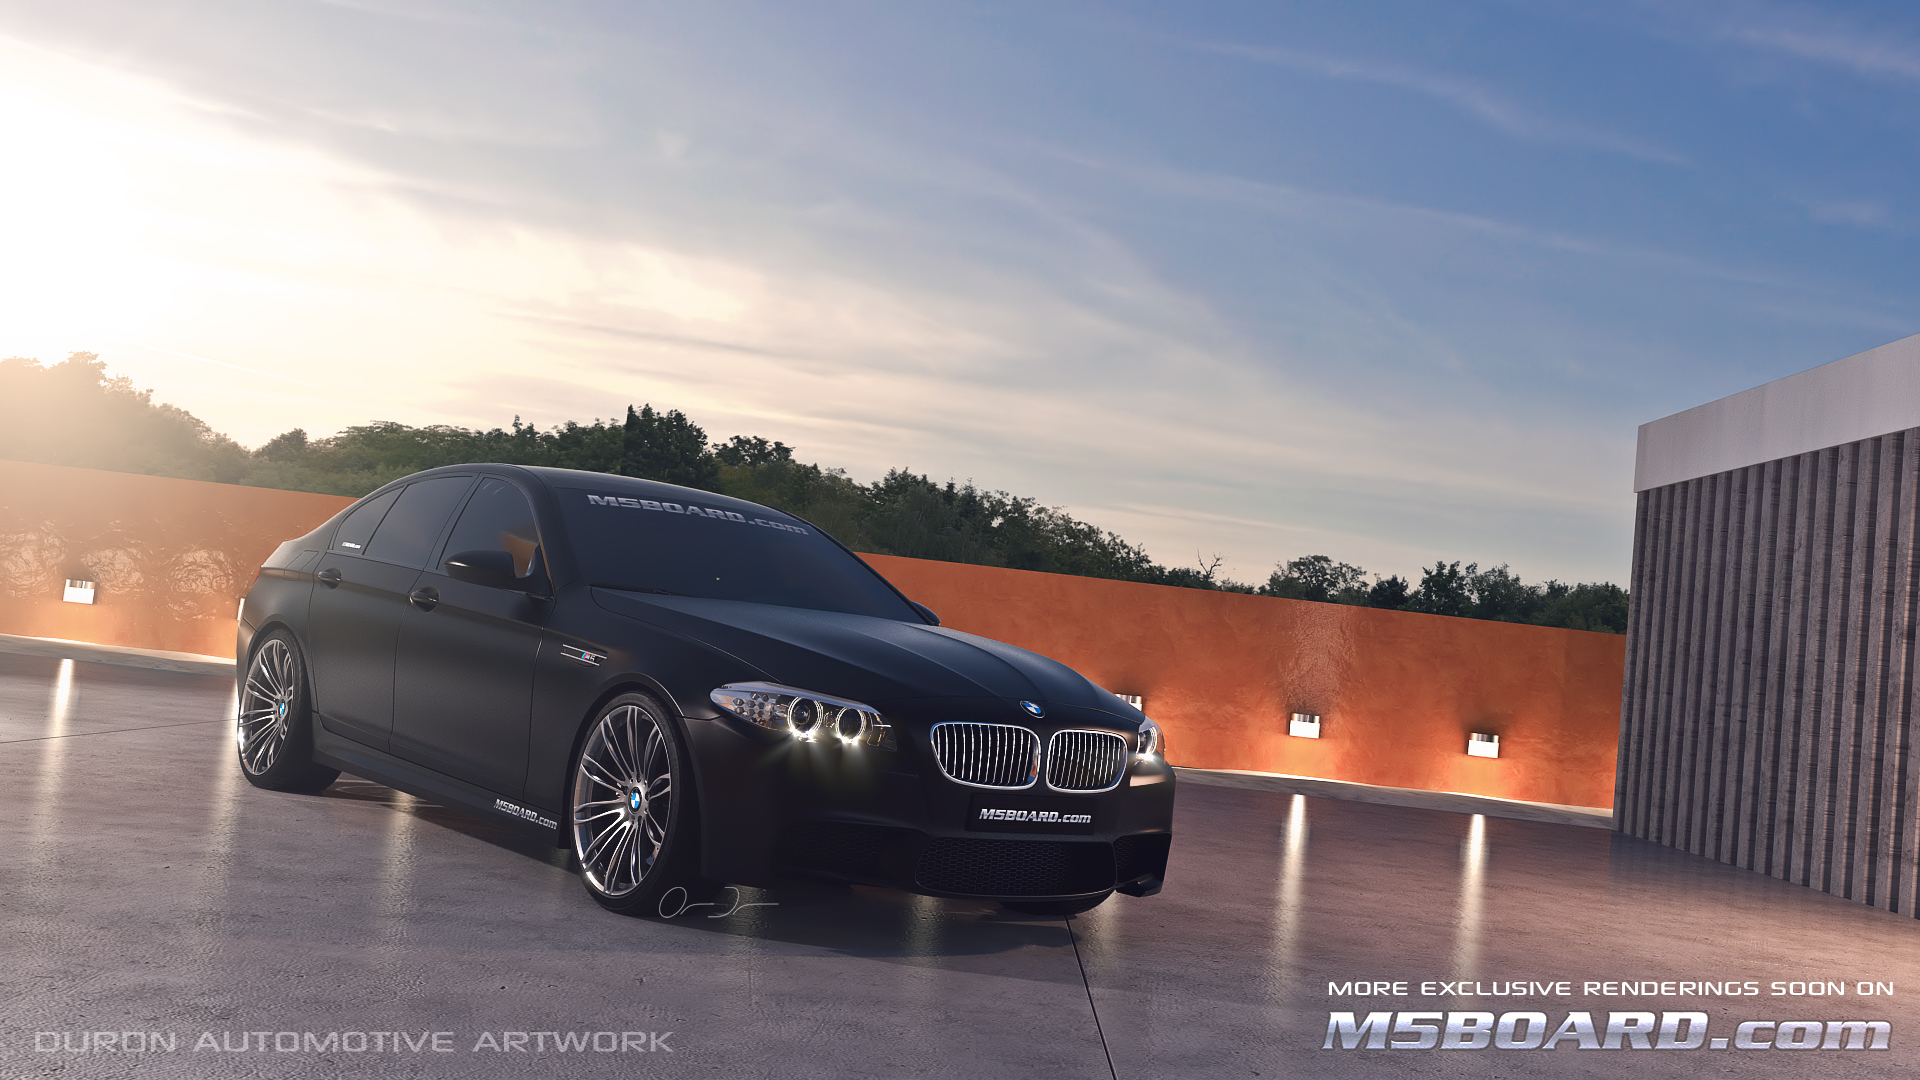 Picture (3D Studio computerrendering): BMW M5 F10 2011 in clear Indianapolis Red + Interlagos Blue at the Luxury Estate from the Front and Rear-m5boardfrozenblacksapphireblackbmwm5f102011.jpg